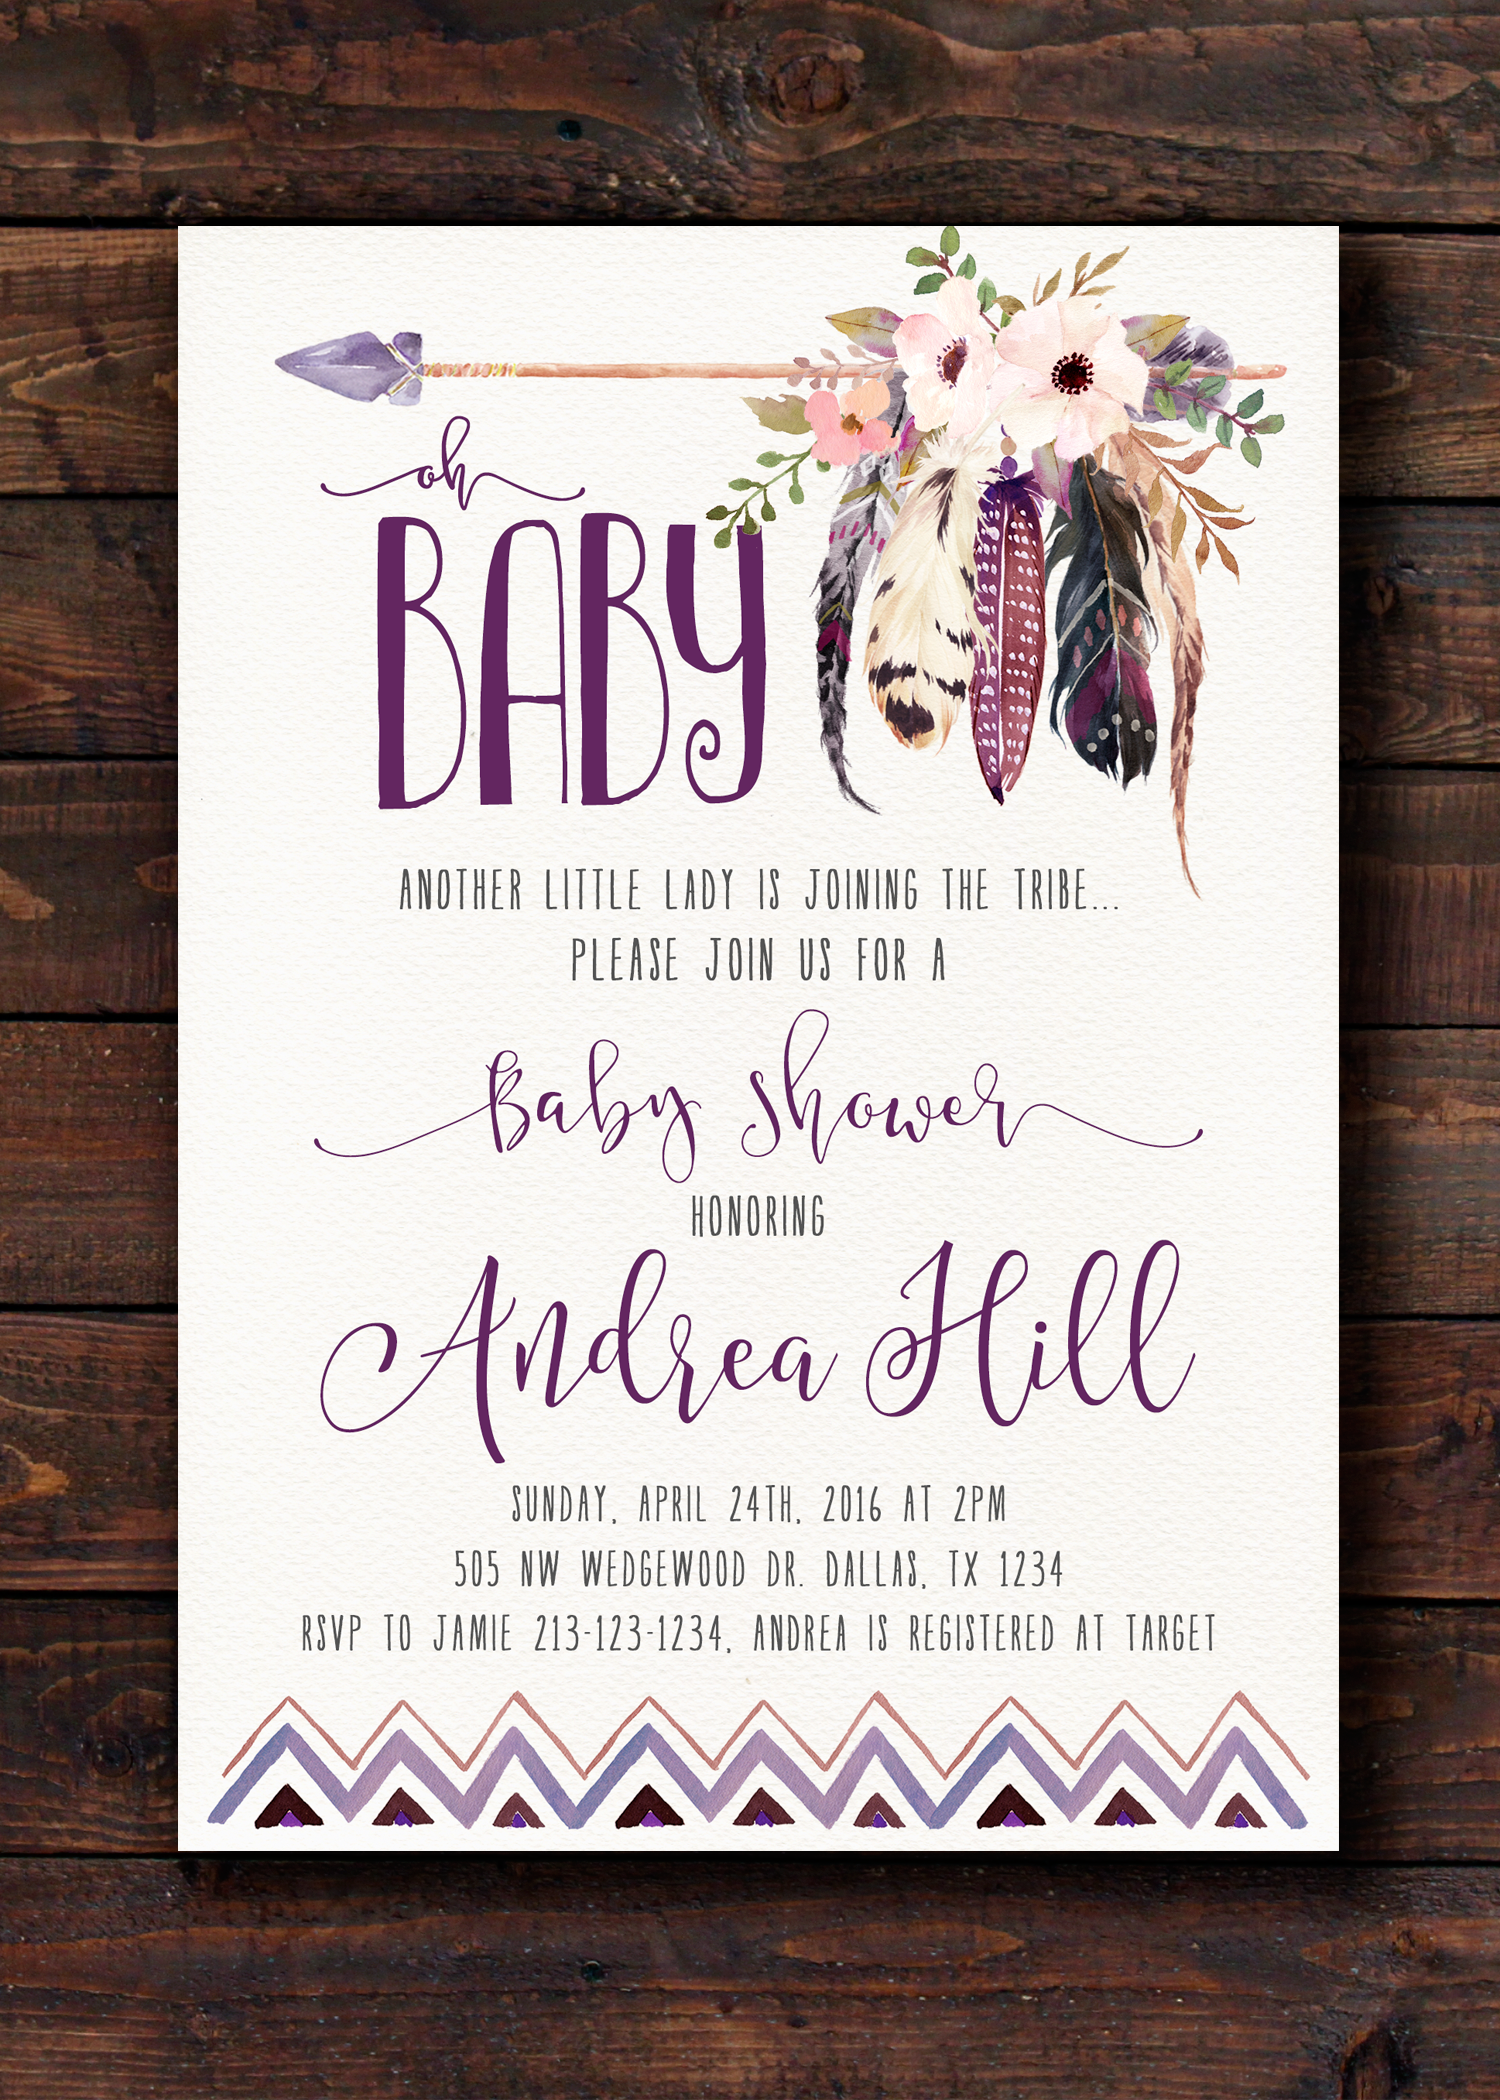 Adorable Rustic Boho Shower Invite! From 21Willow on Etsy